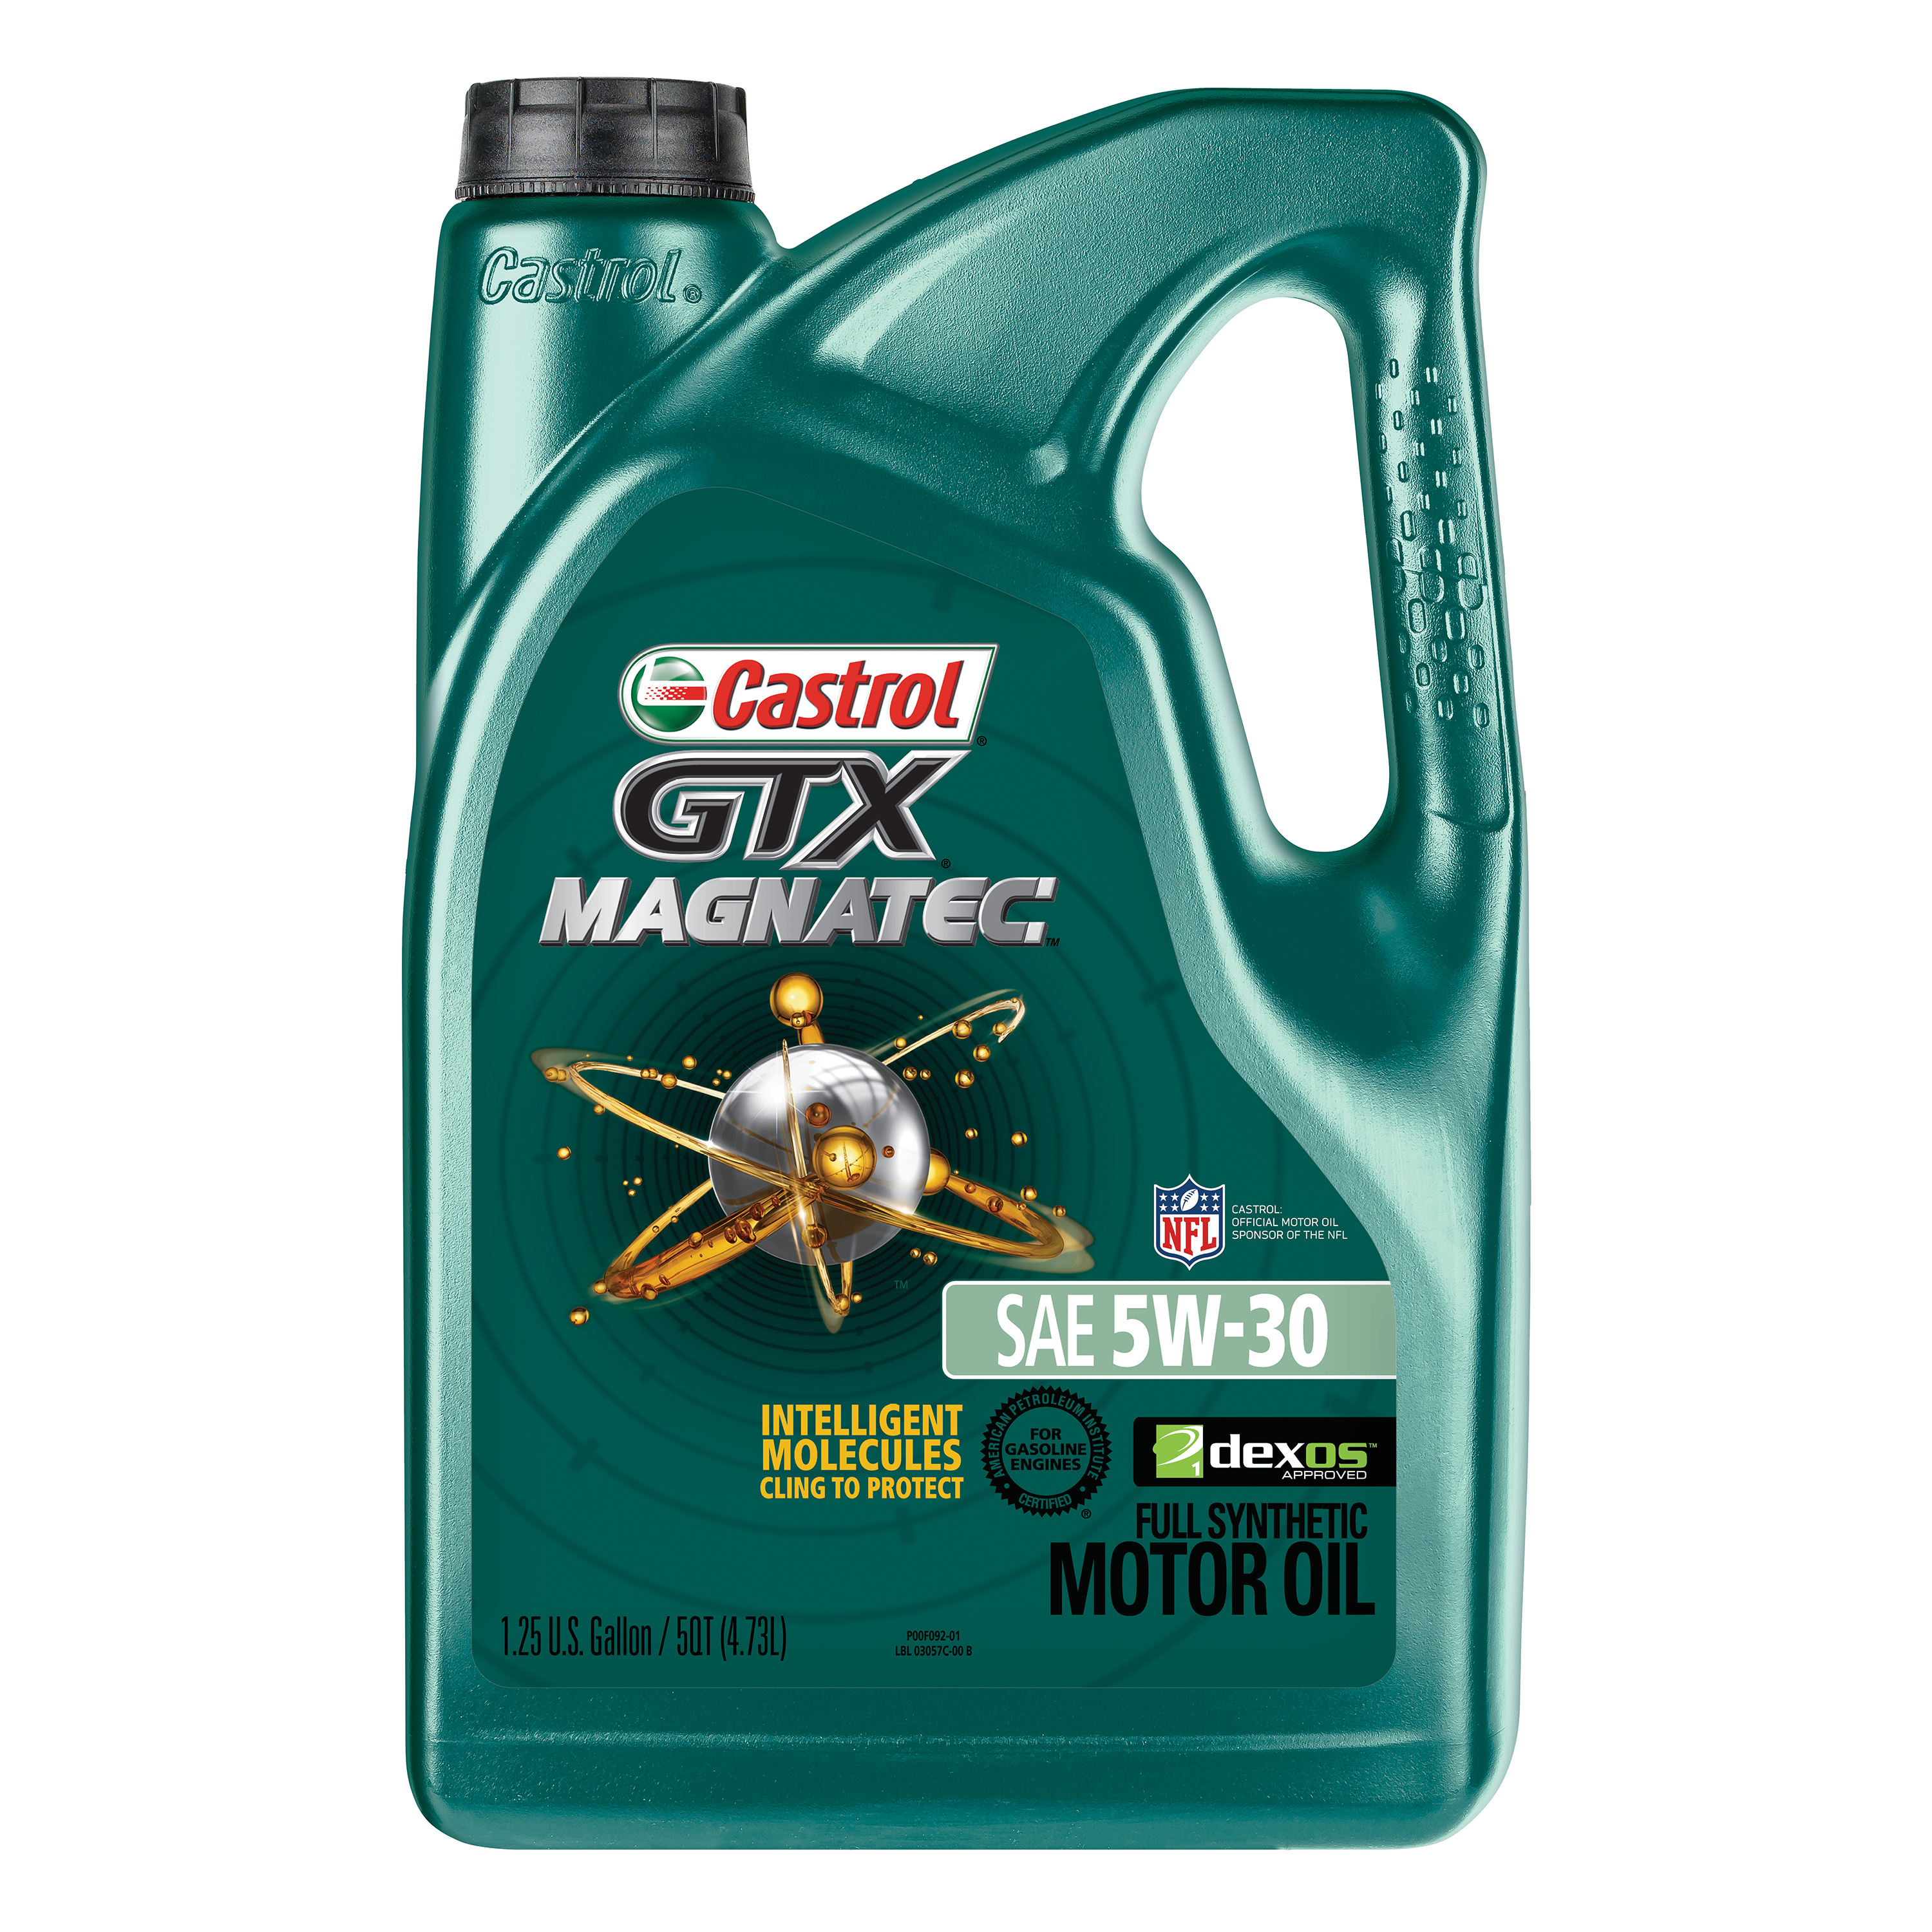 Castrol GTX MAGNATEC 5W-30 Full Synthetic Motor Oil, 5 QT